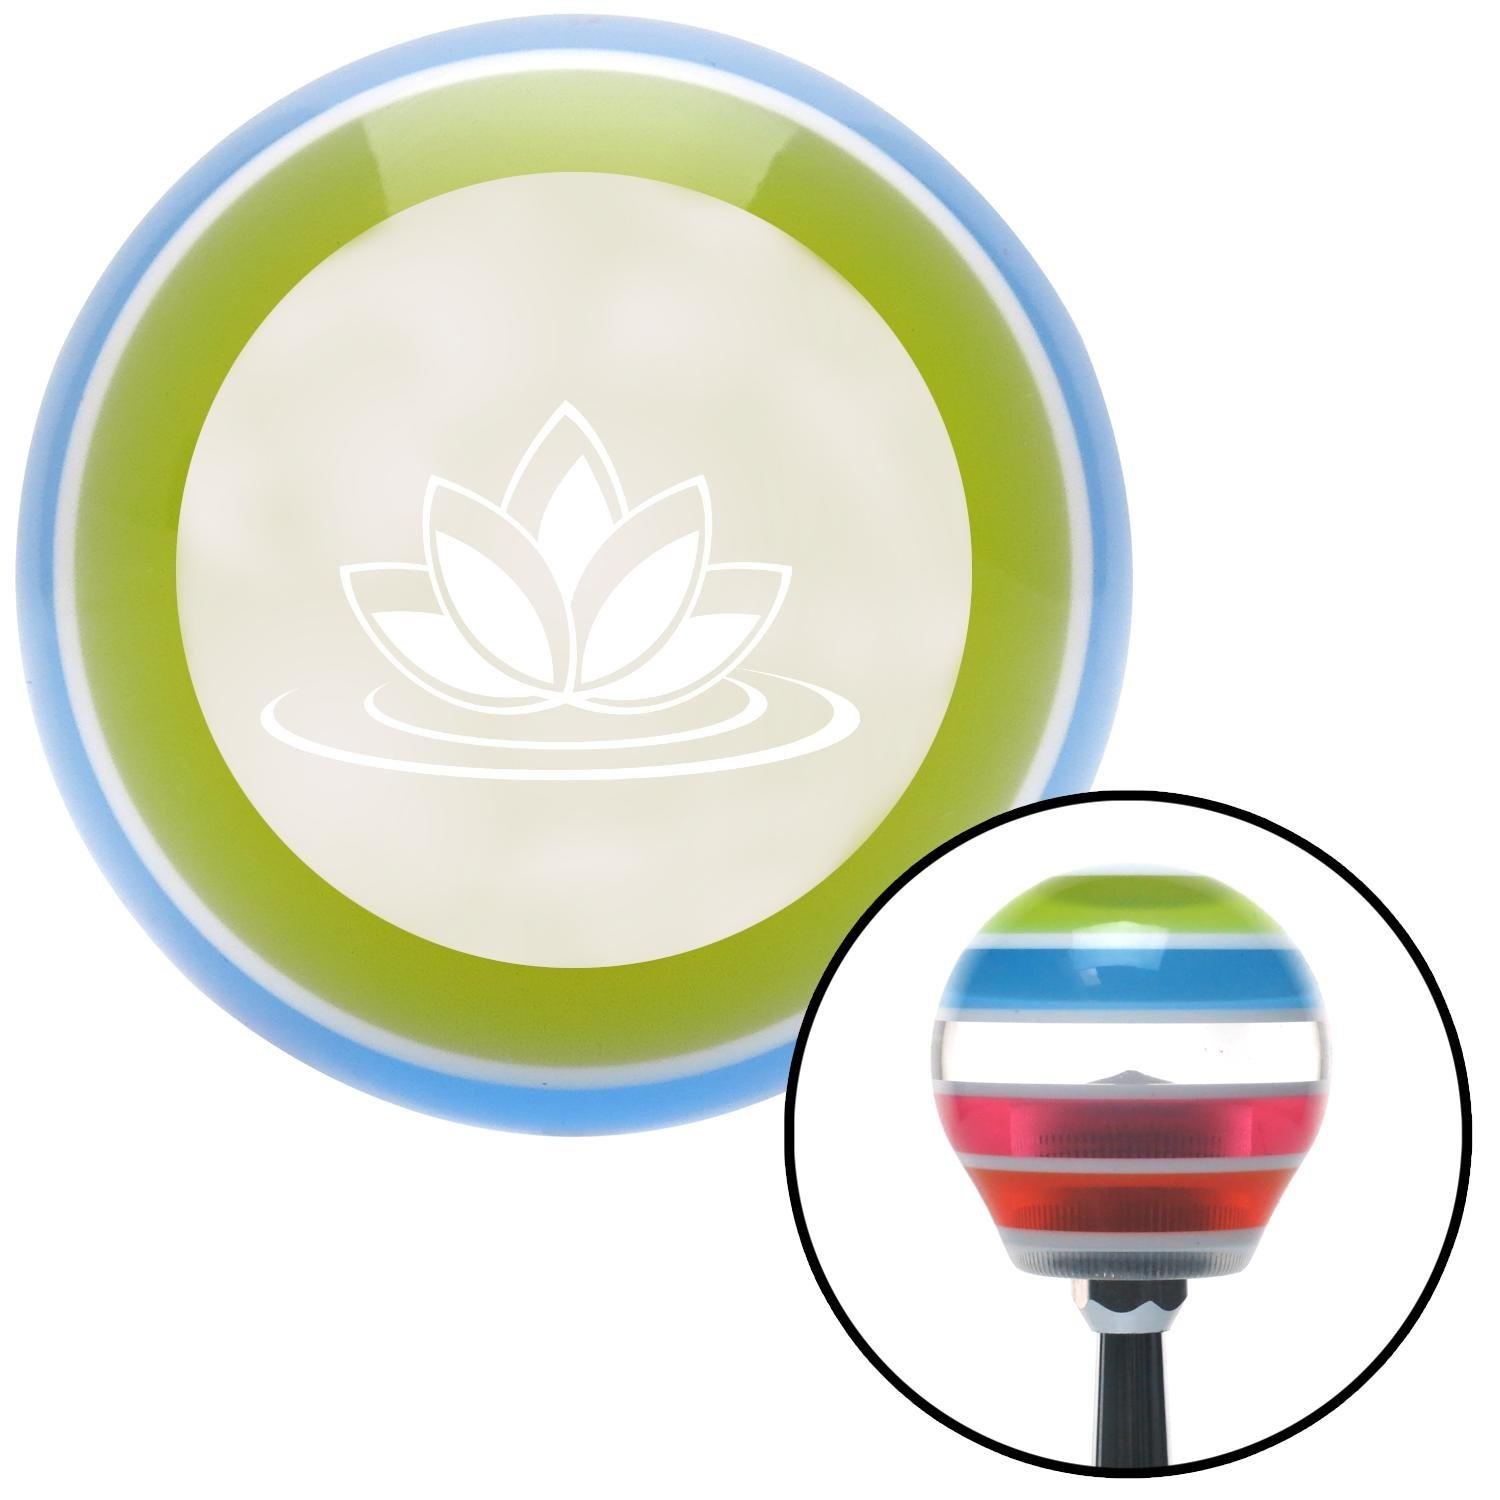 White Flower on Water American Shifter 135402 Stripe Shift Knob with M16 x 1.5 Insert